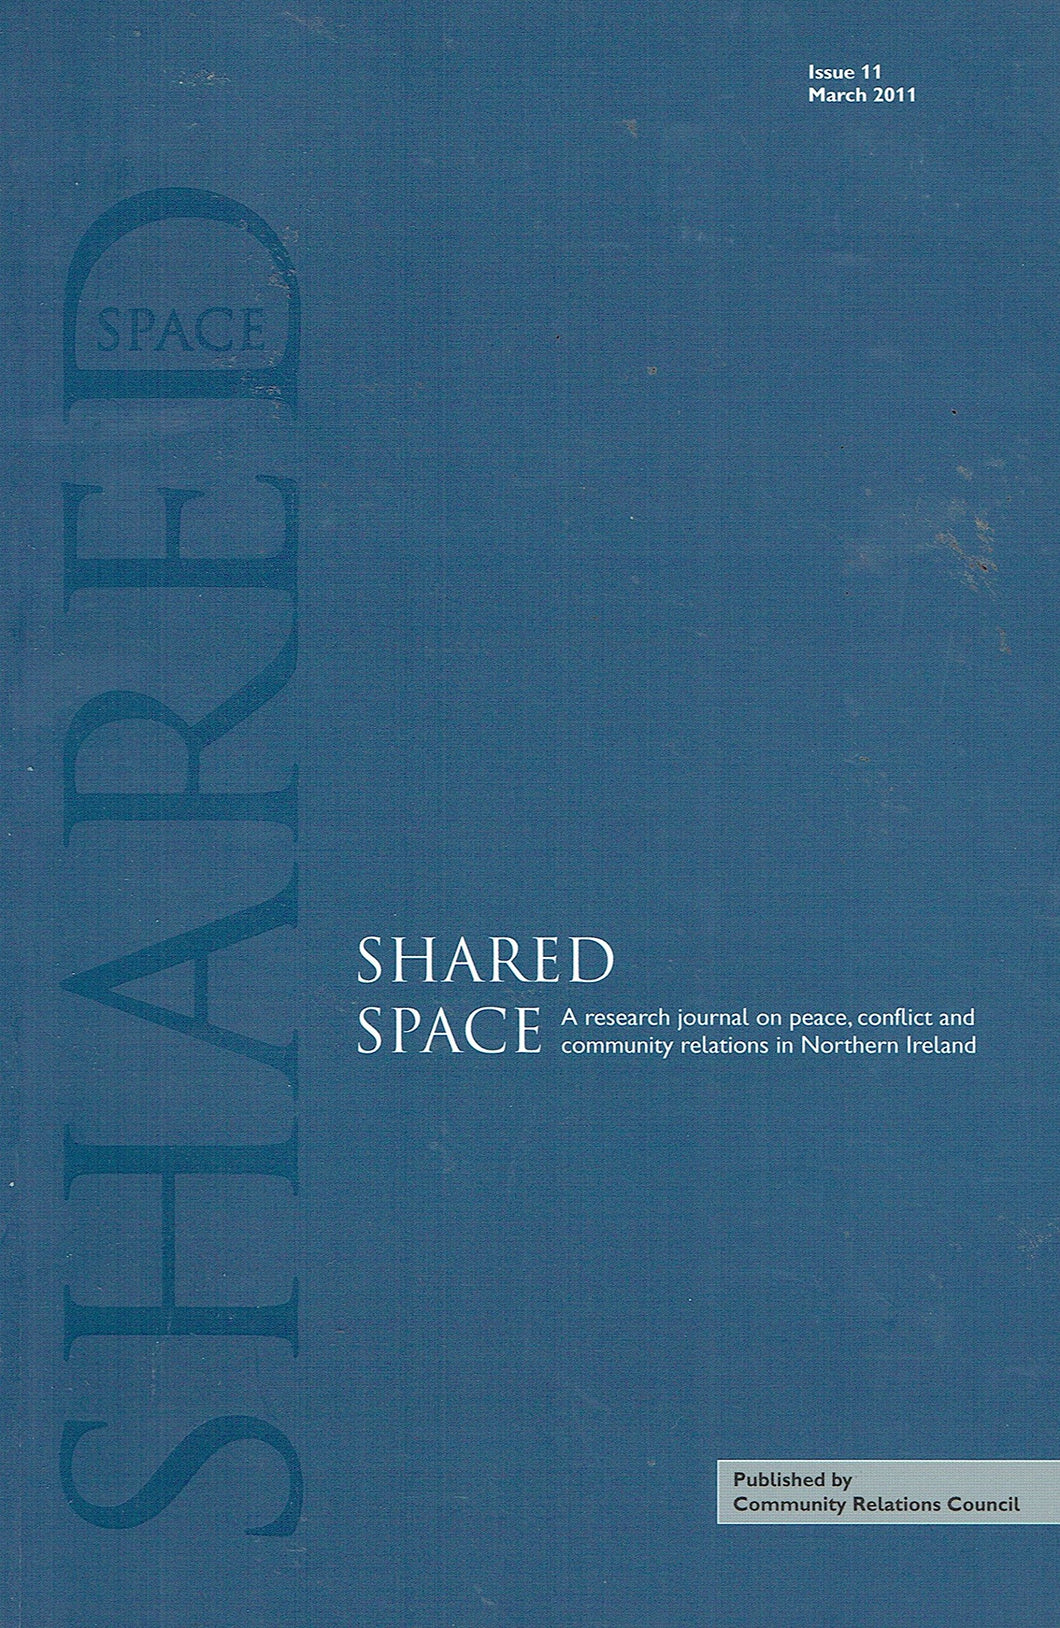 Shared Space, Issue 11 - March 2011: A Research Journal on Peace, Conflict and community Relations in Northern Ireland